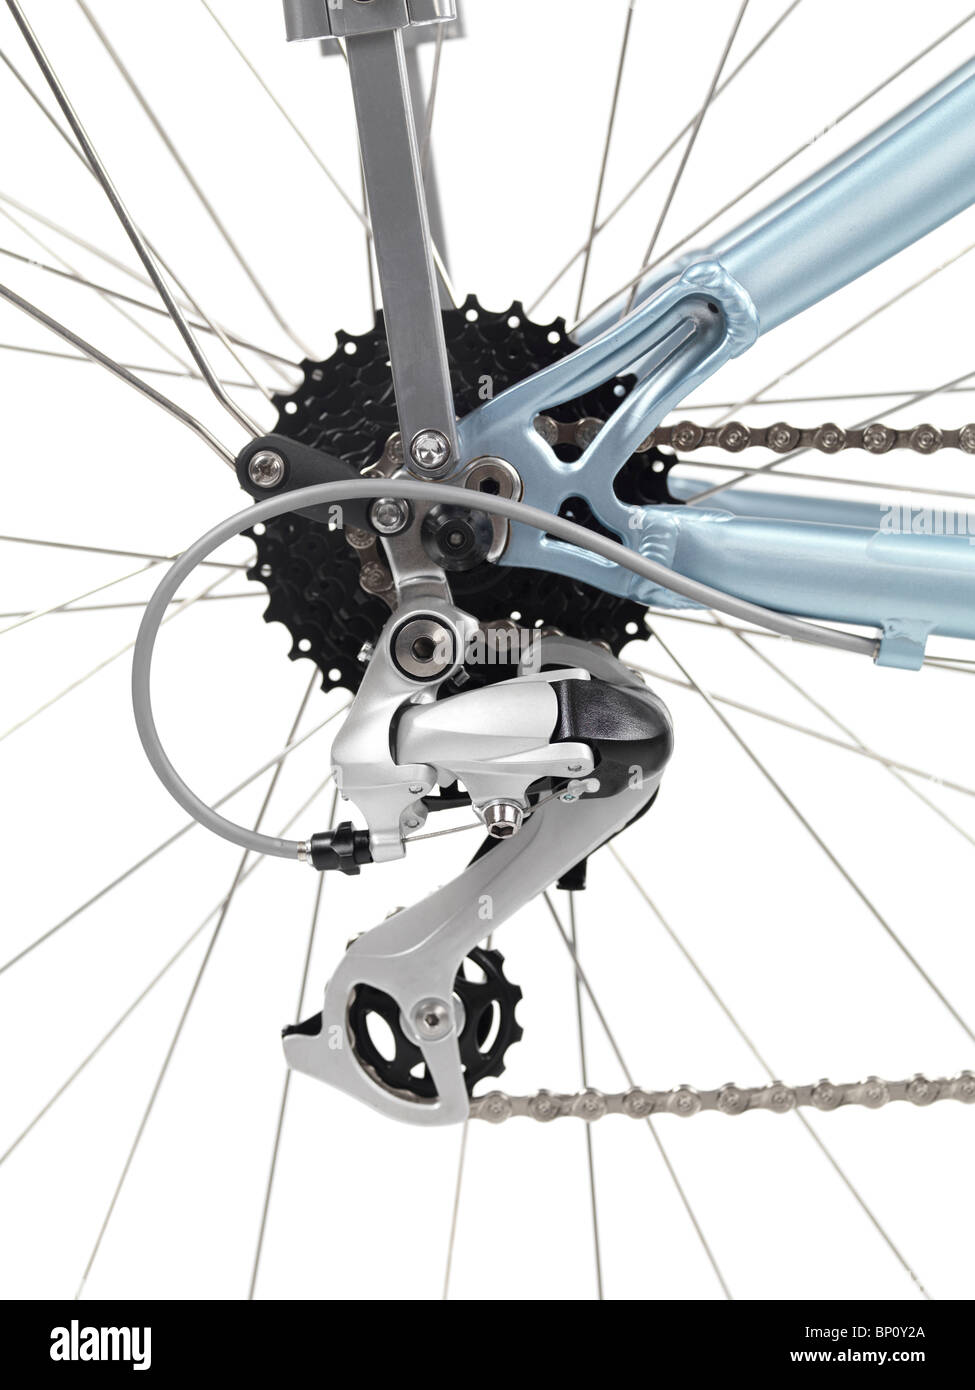 Set of gears and a derailleur of a 21-speed bicycle - Stock Image